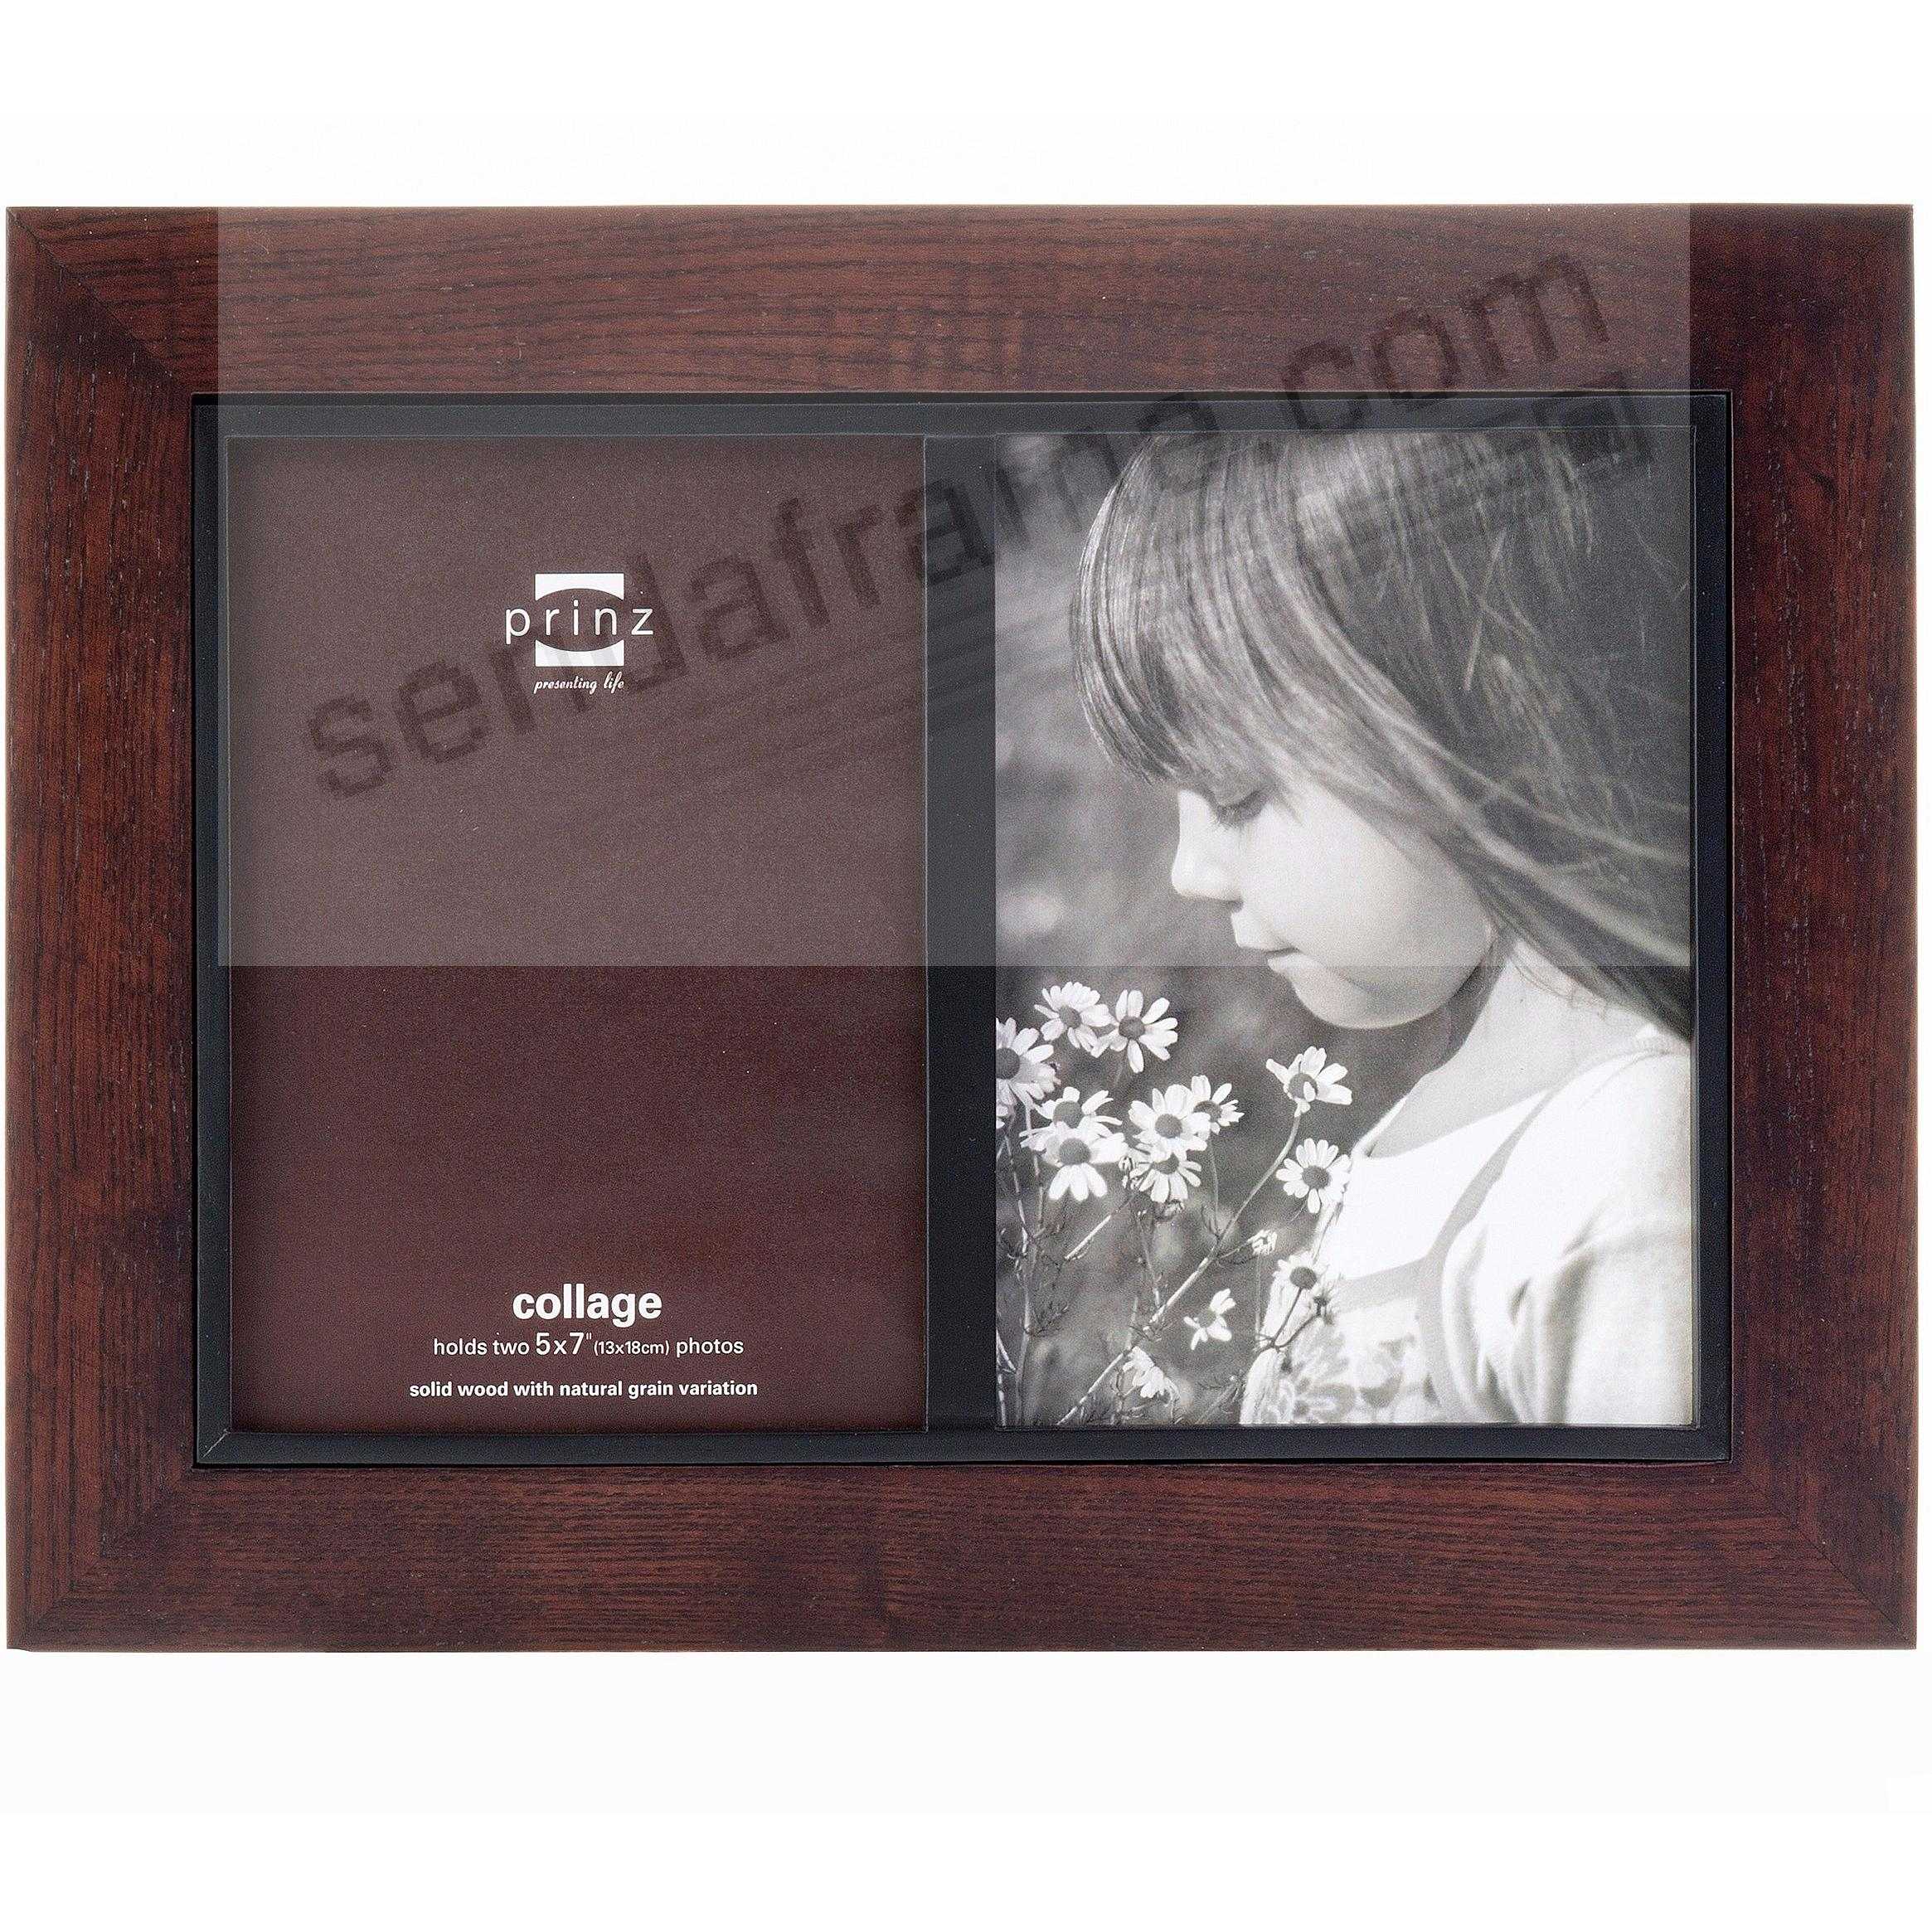 Adler walnut stained wood double 5x7 frame by prinz for Engraved digital photo frame